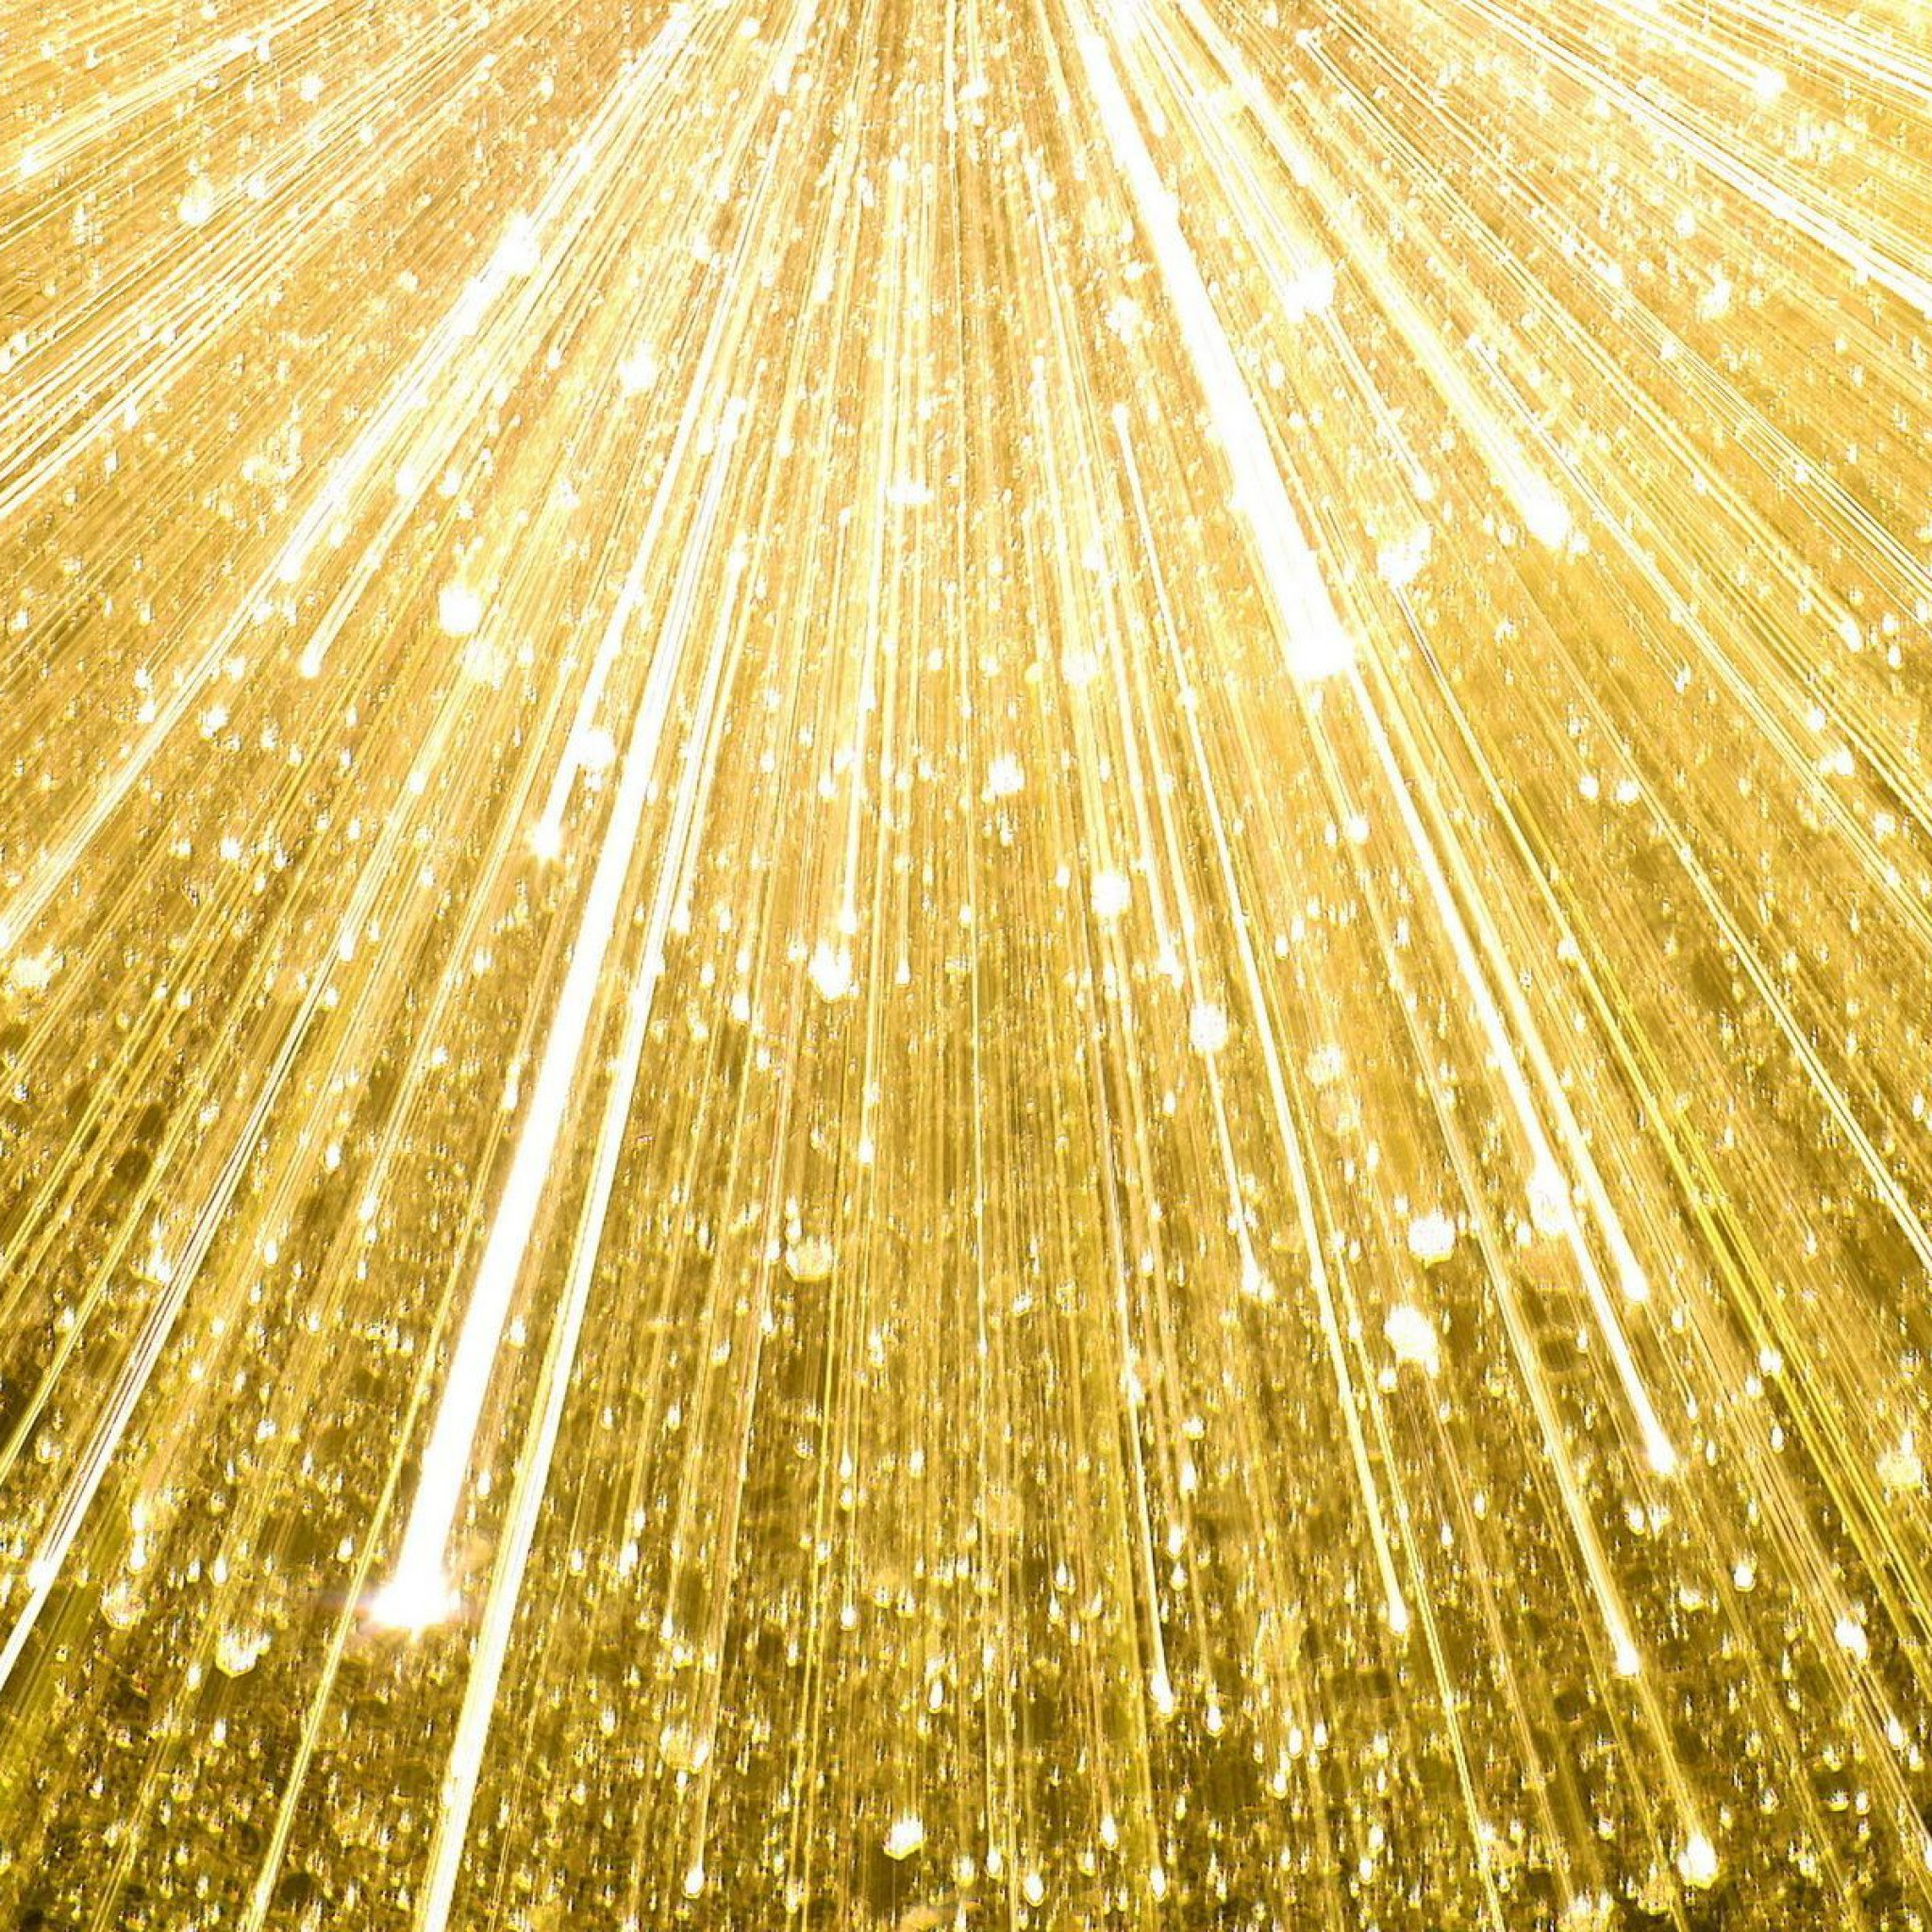 2048x2048 Wallpaper For Iphone 5s Gold